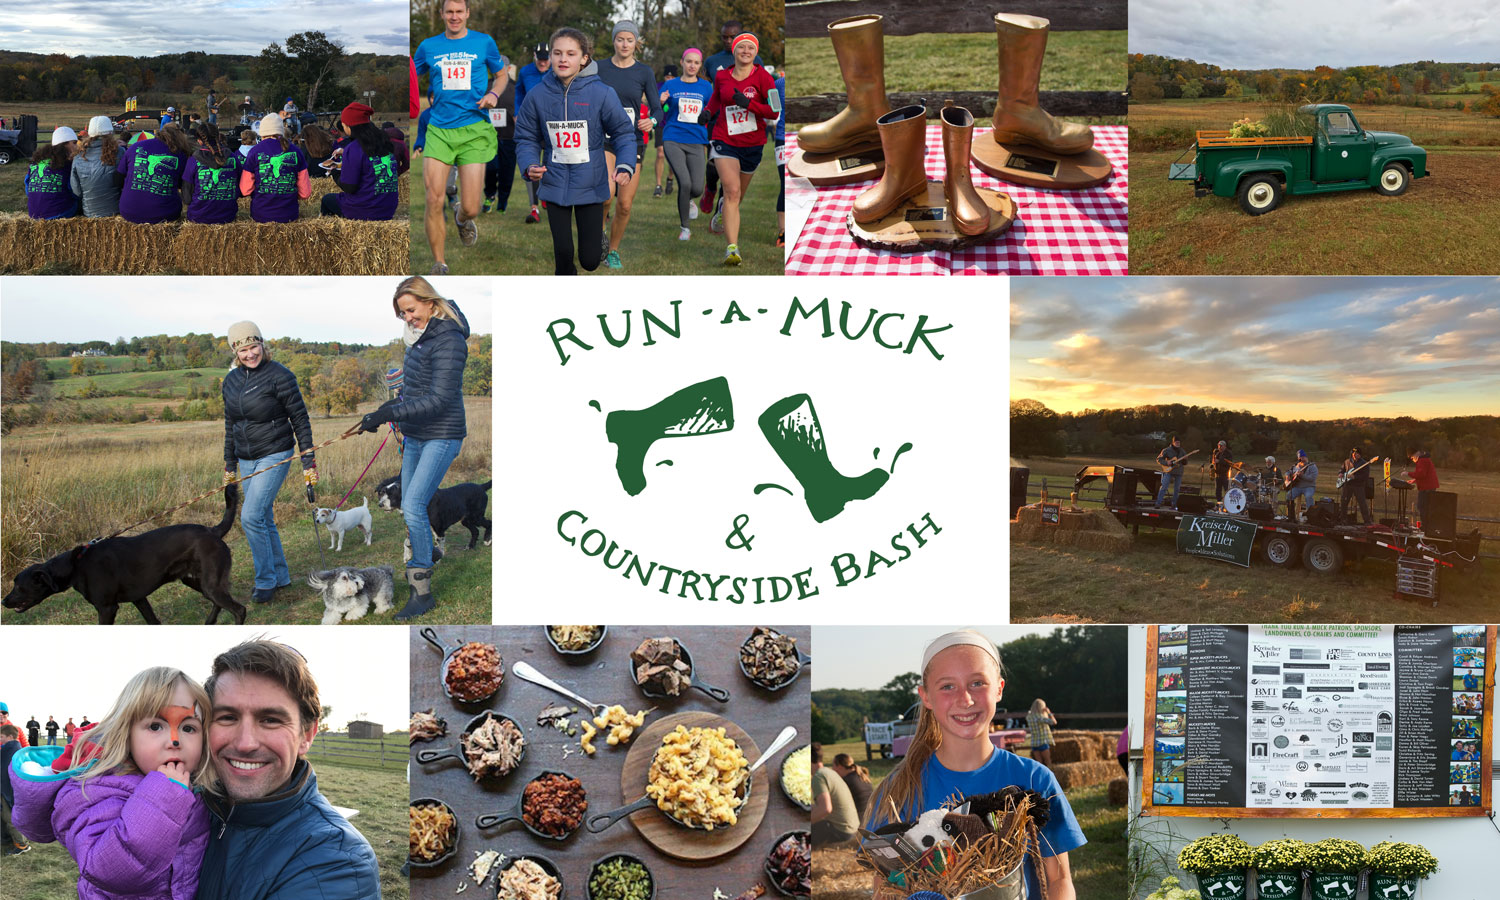 Run-a-Muck-collage-photo-for-website-page_1500